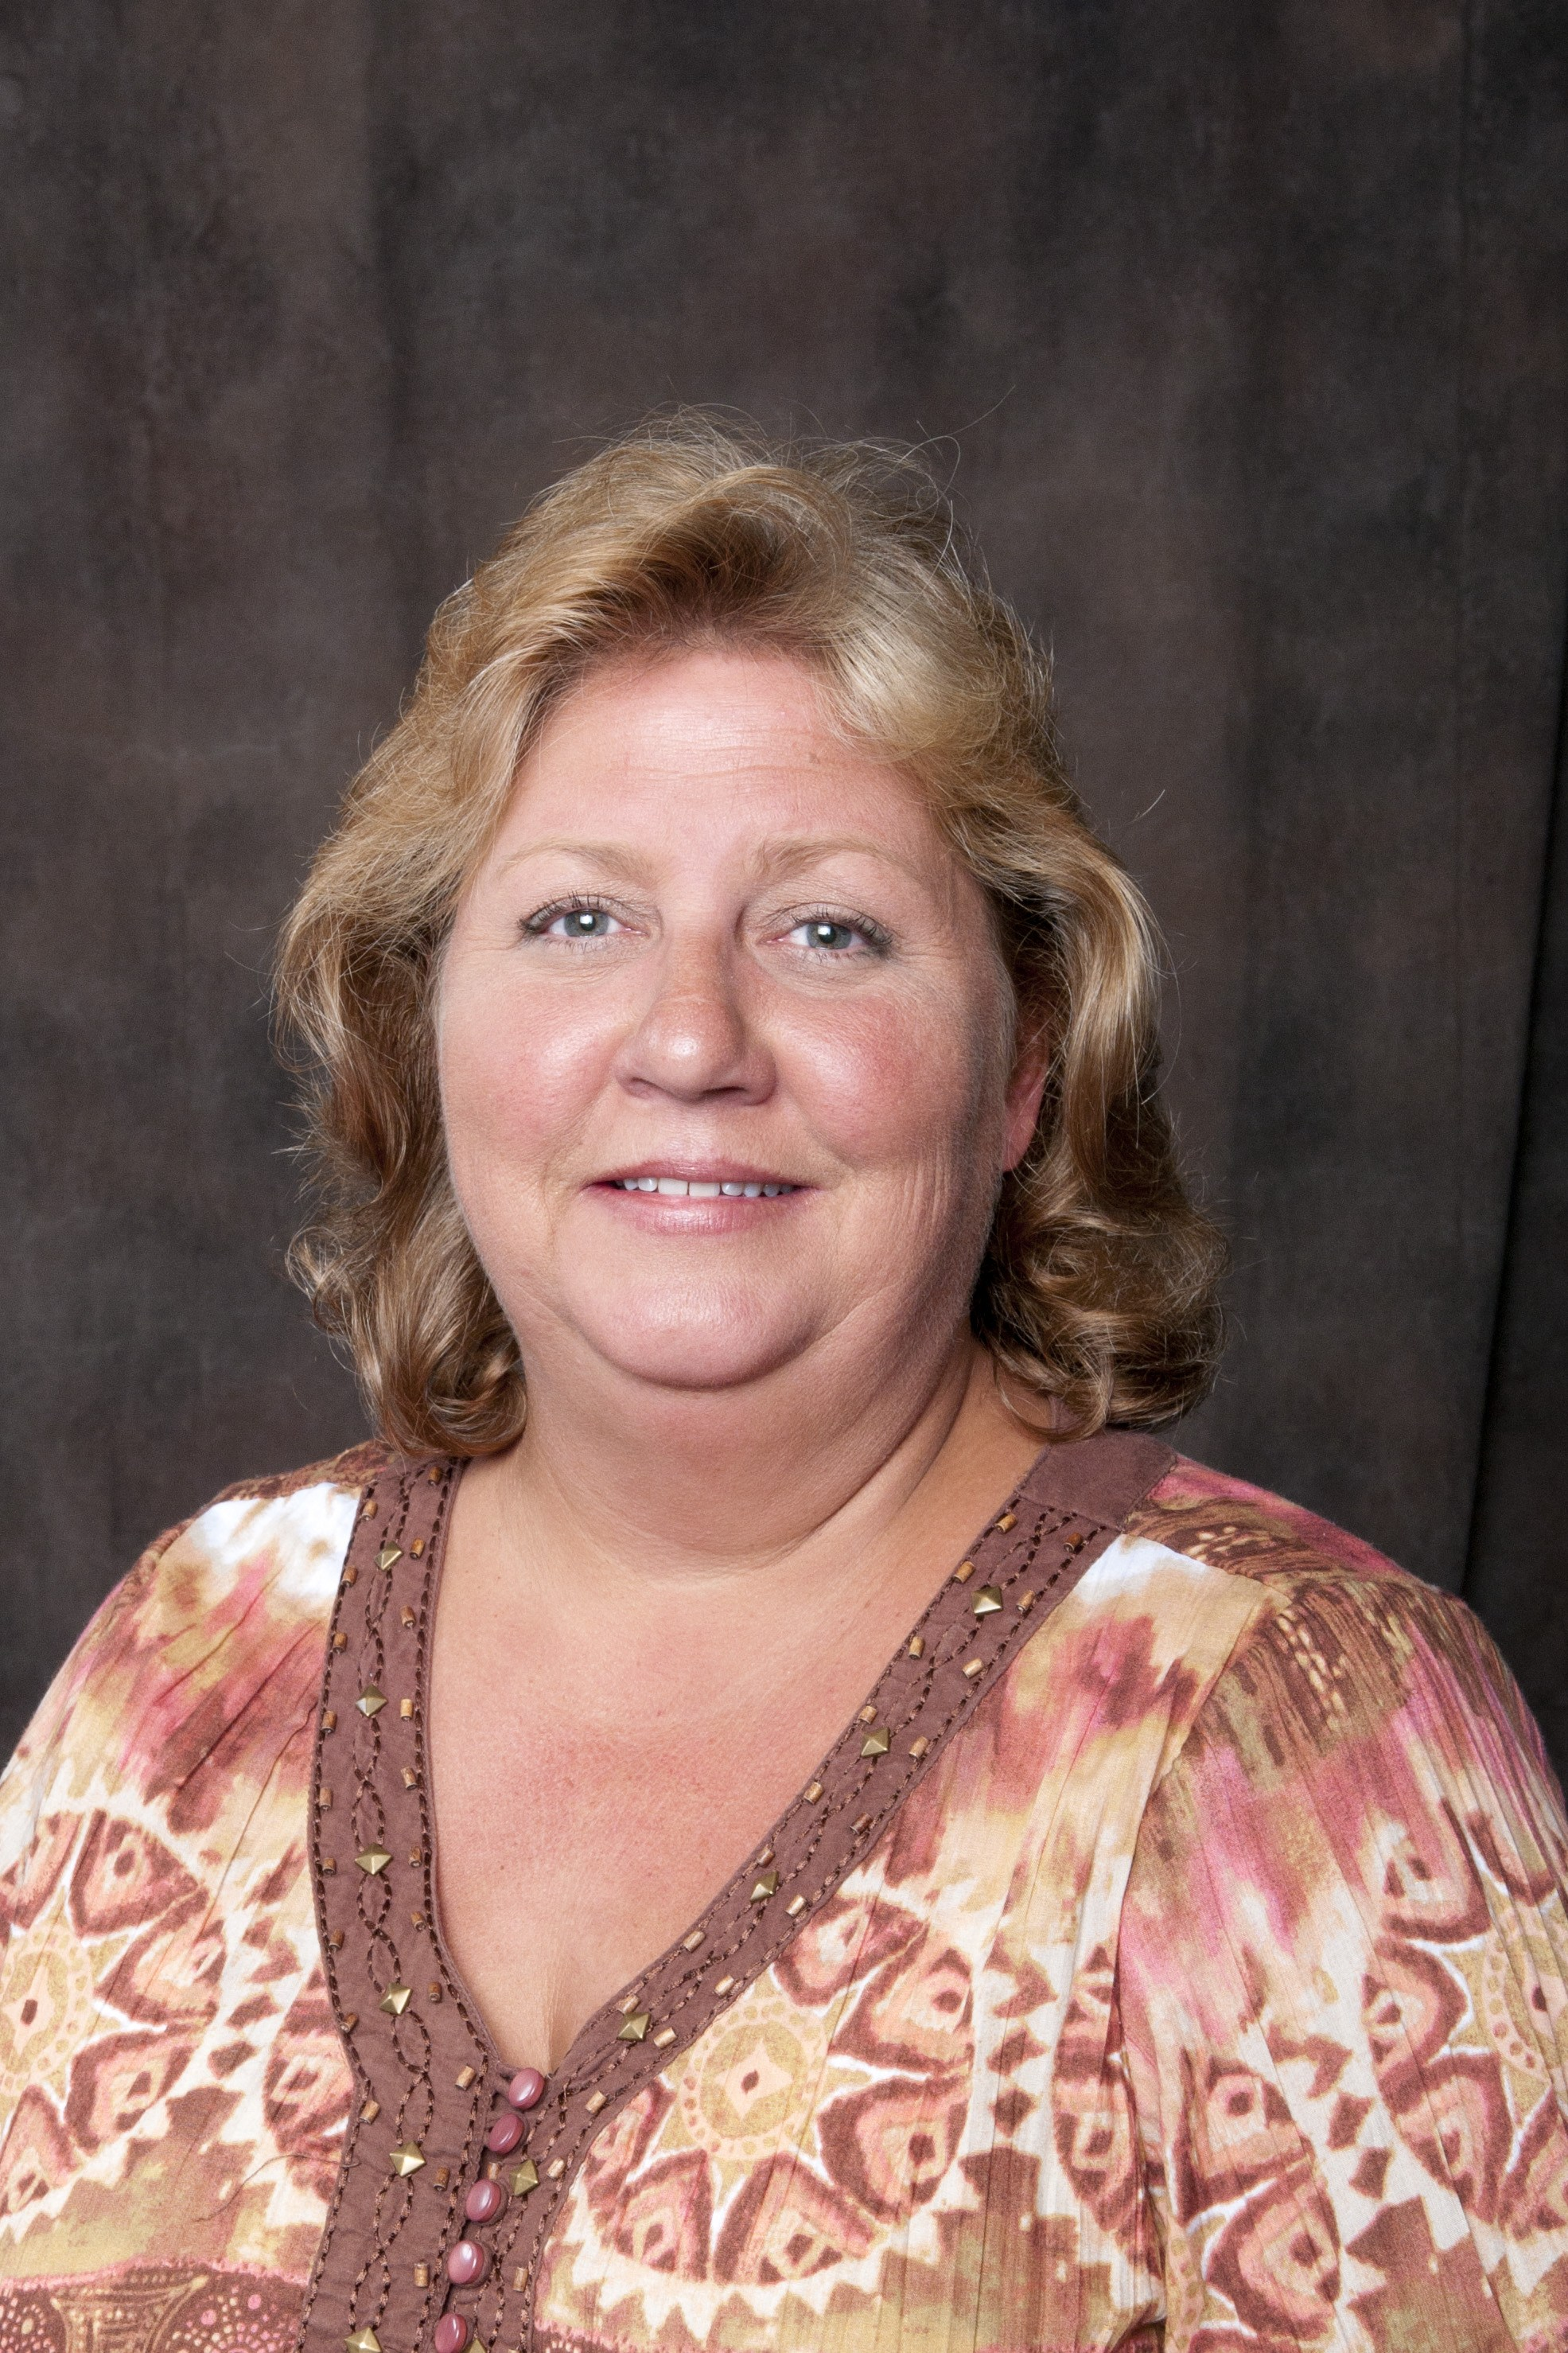 Image of Ann Boyett, Business Services